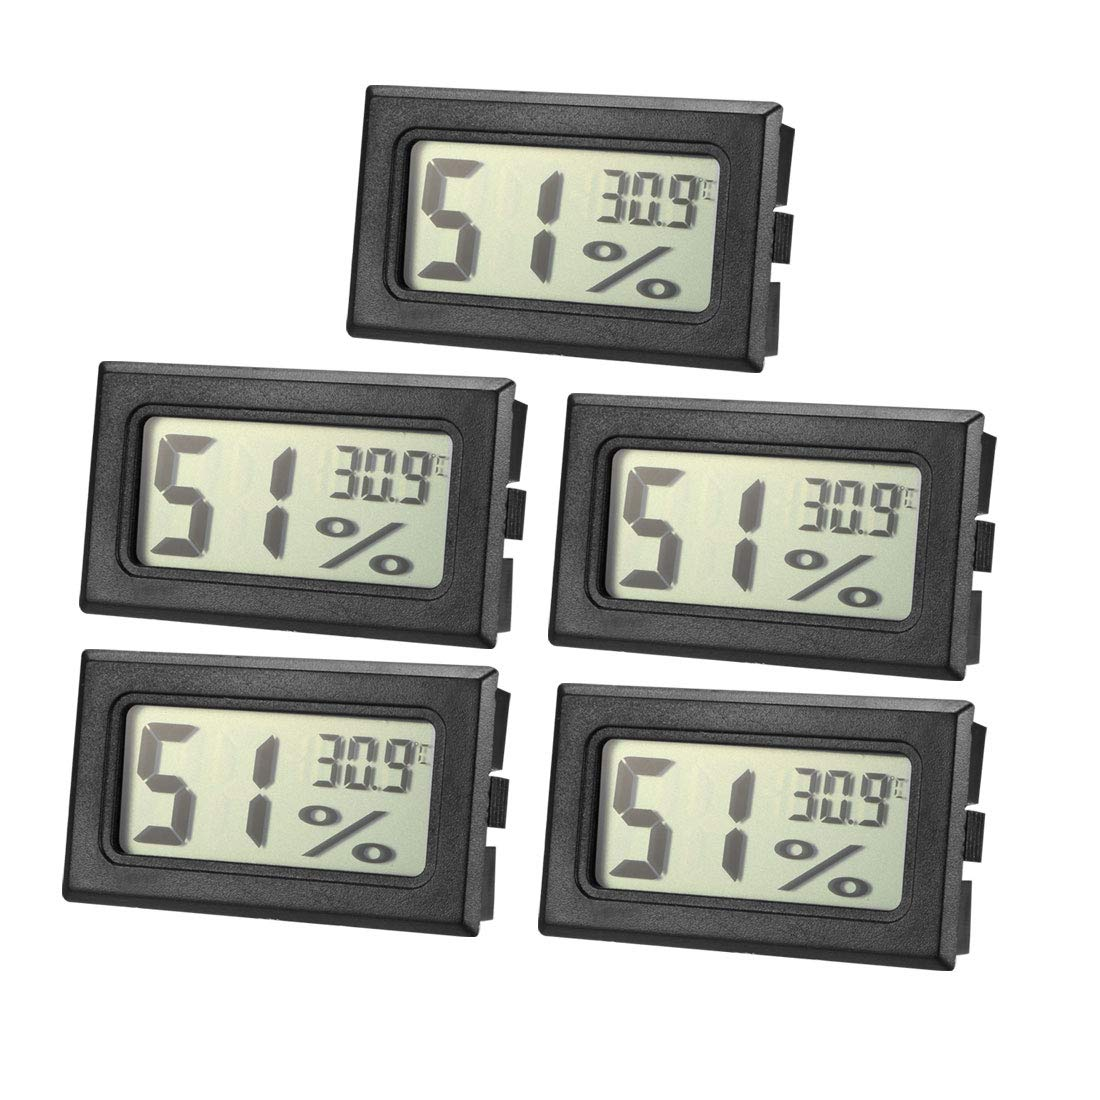 uxcell Black Digital Temperature Humidity Meters Gauge Indoor Thermometer Hygrometer LCD Display Celsius °C for Humidors, Greenhouse 5pcs